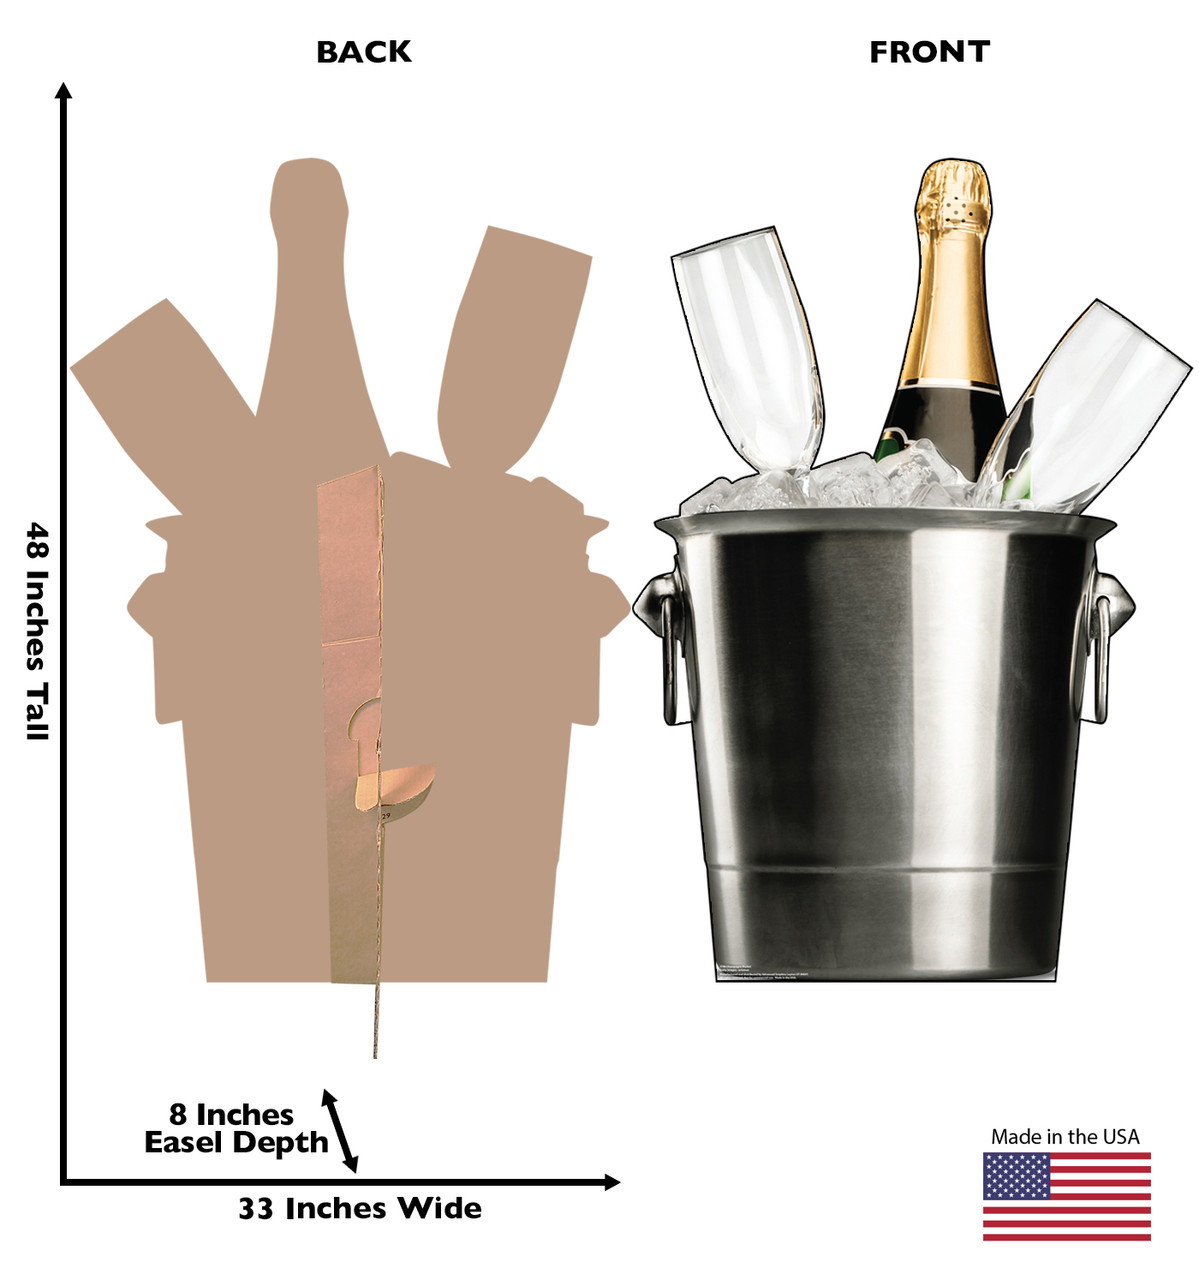 Life-size cardboard standee of a Champagne Bucket. View of back and front of standee with dimensions.